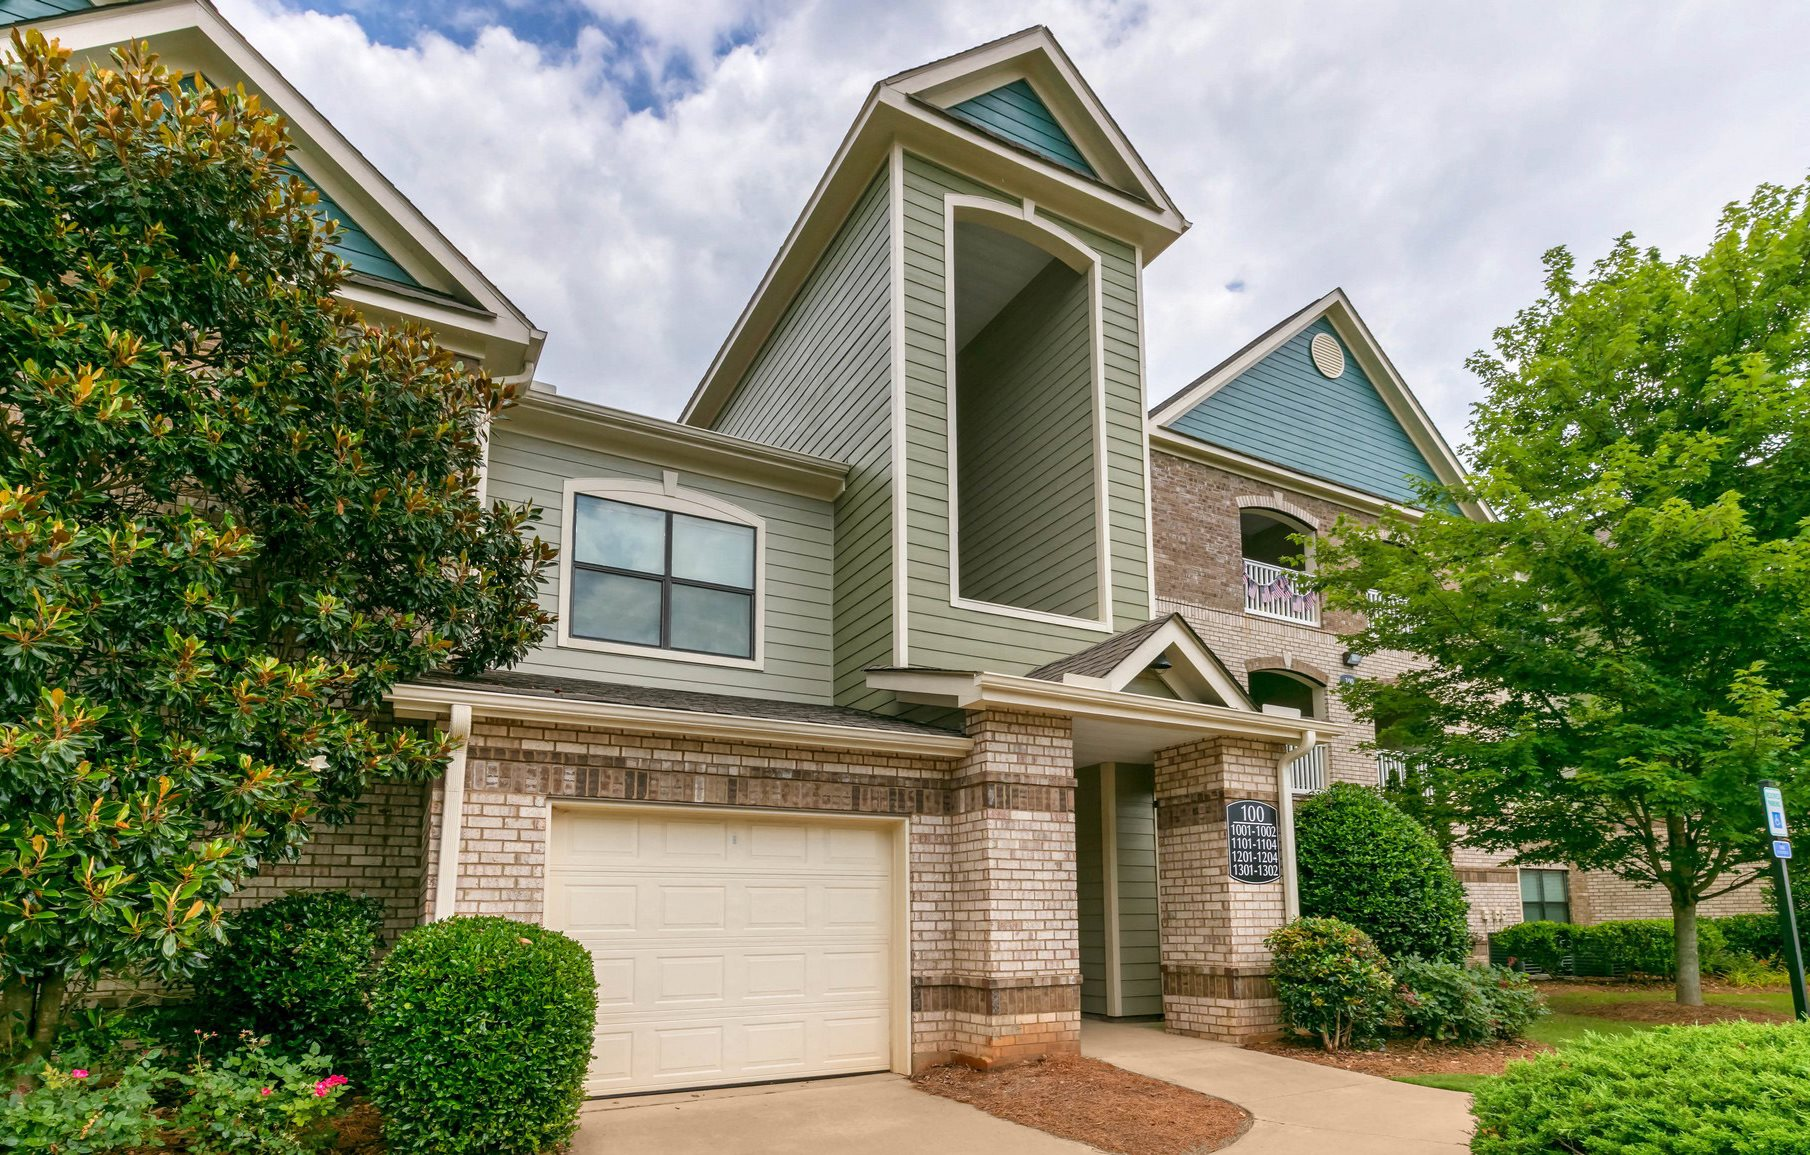 Attached Garages at Waterstone Apartment Homes in Buford, Georgia, GA